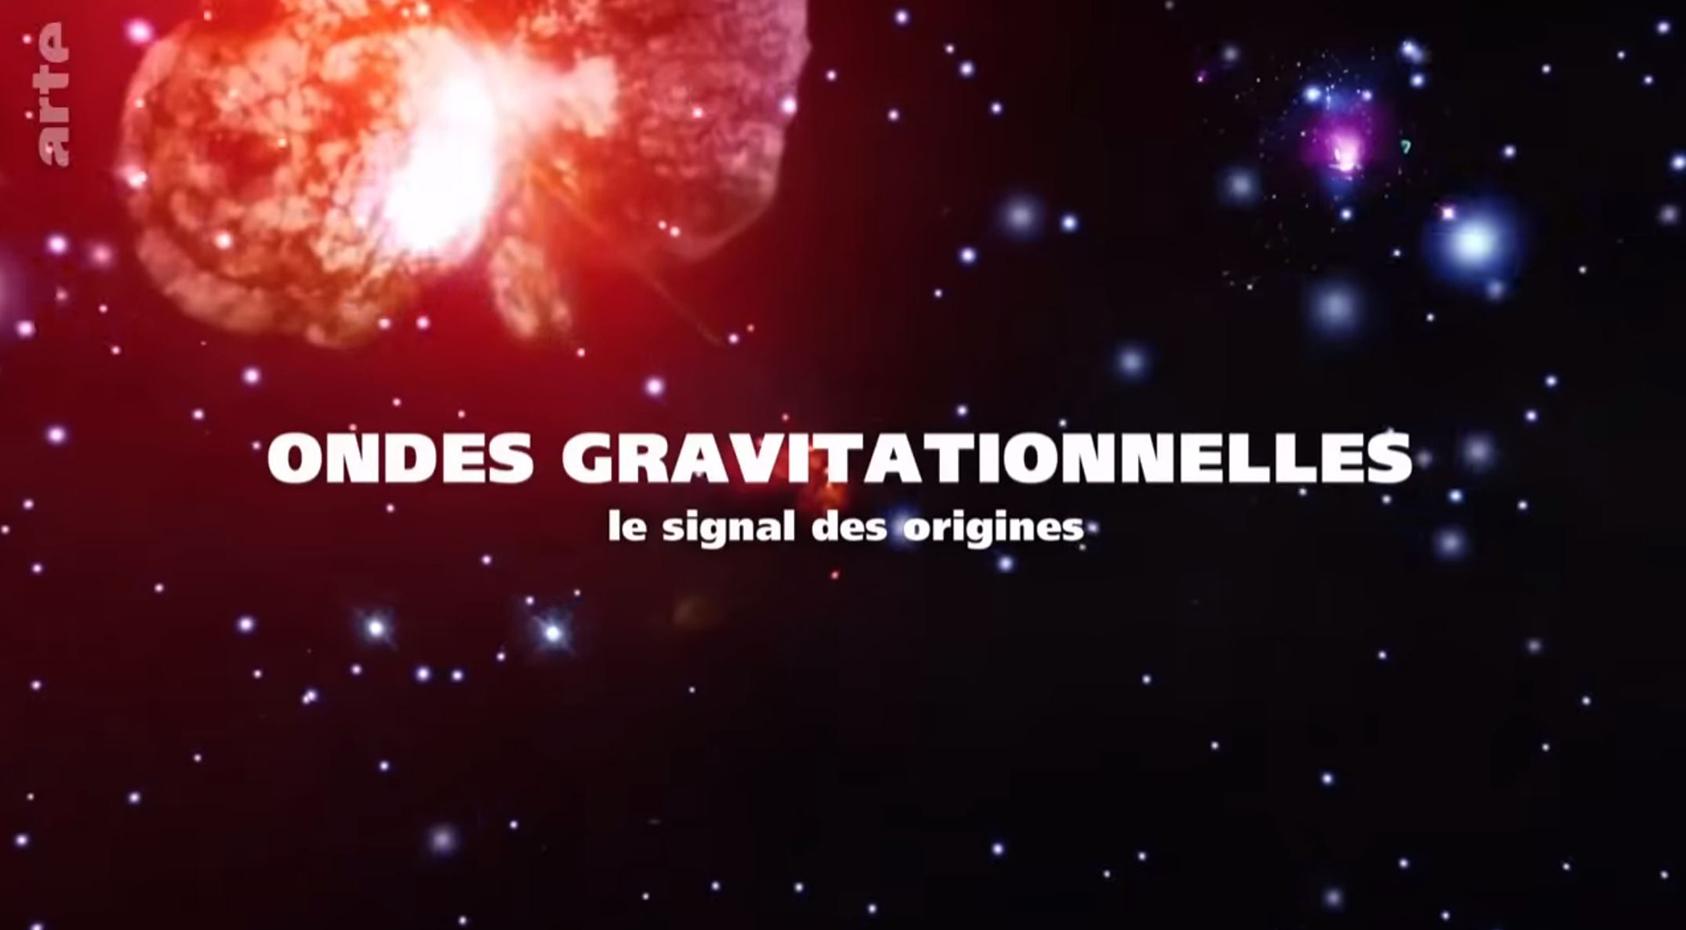 Ondes gravitationnelles : le signal des origines (ARTE Replay)